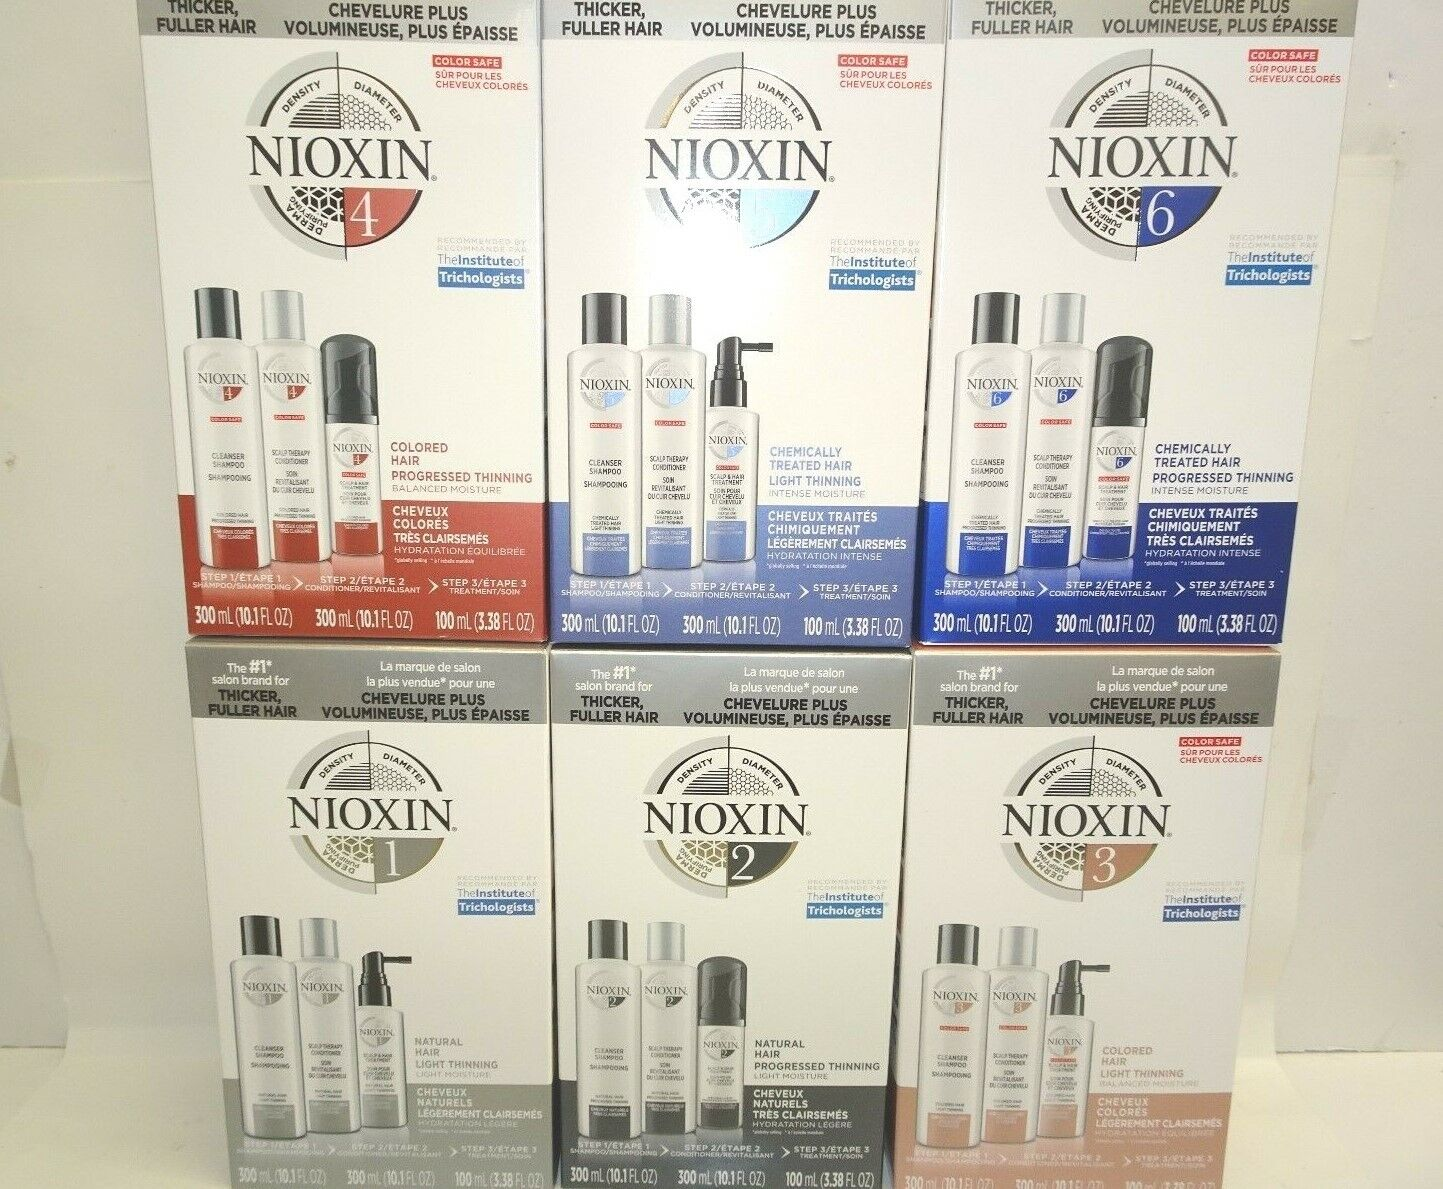 NIOXIN HAIR SYSTEM KIT BRAND NEW 2018 PRODUCT BIGGER SIZES -